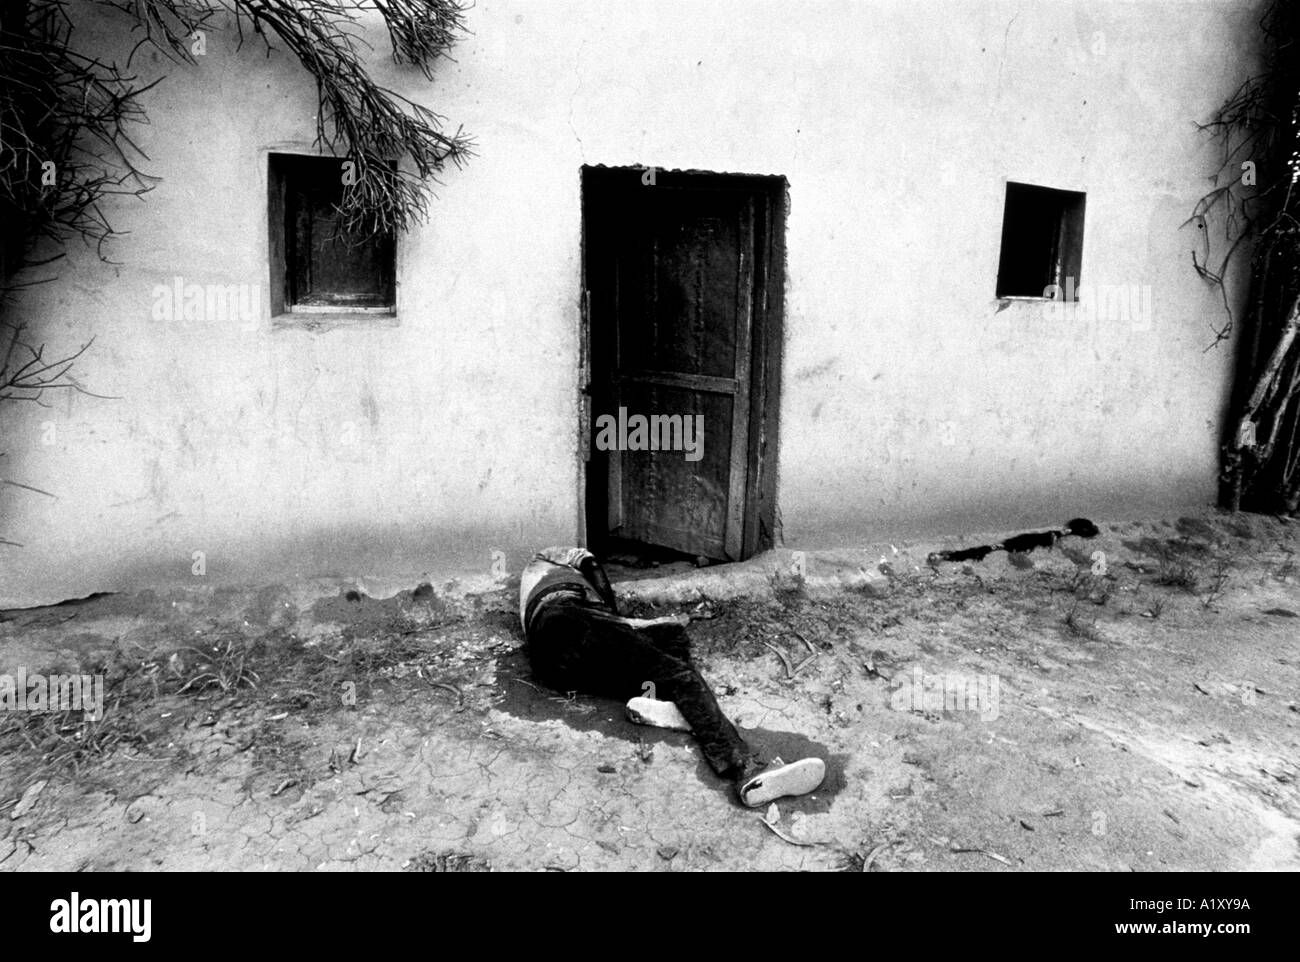 Rwanda Civila War - The body of an ethnic Hutu lies decaying in front of a doorway - a victim of the Tutsi massacre. - Stock Image